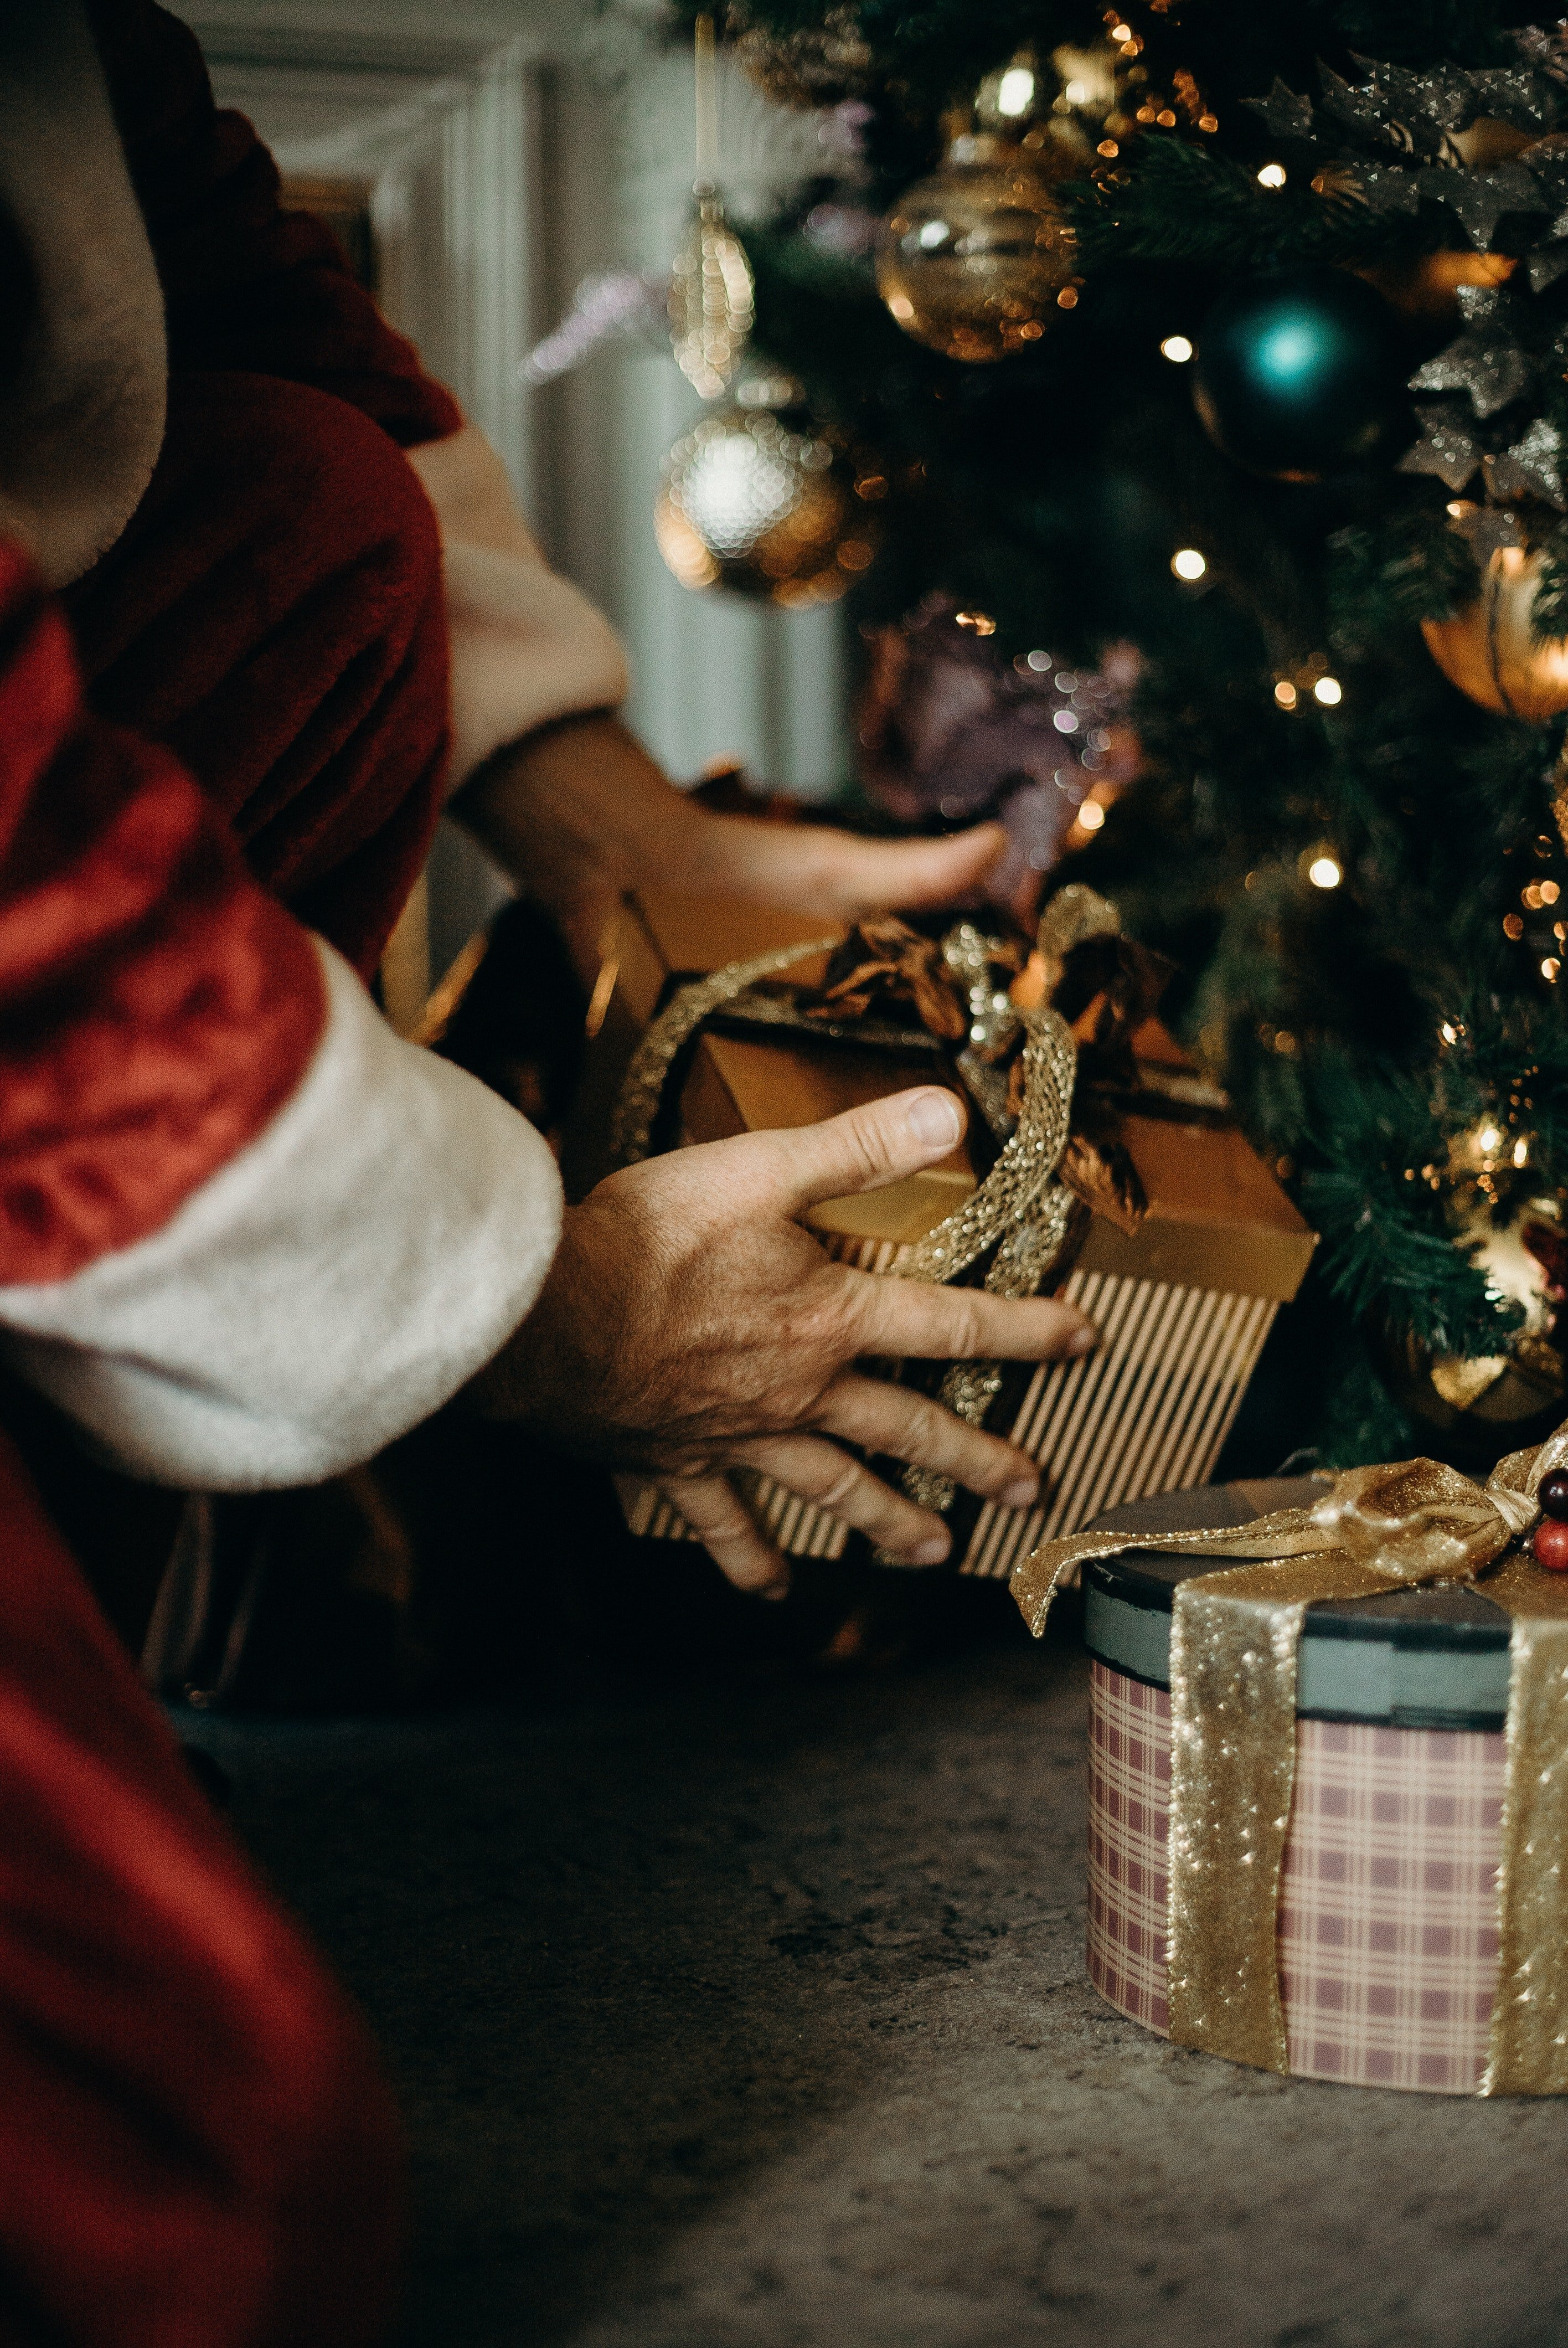 Santa secretly putting a gift under the Christmas tree. | Source: Pexels.